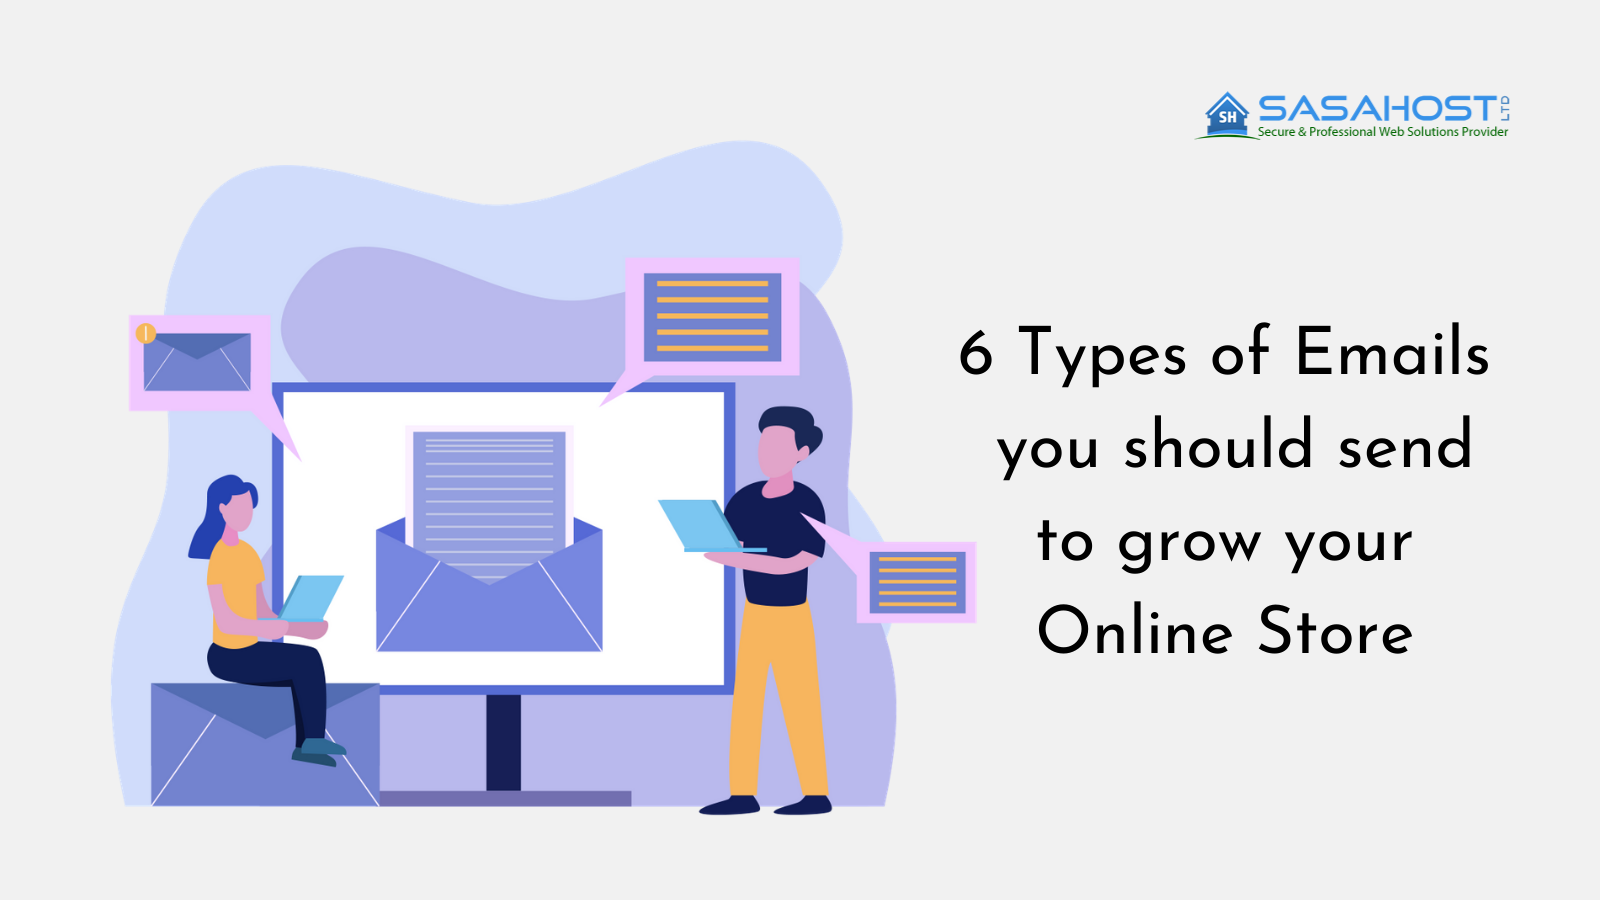 6 Types of Emails you should send to grow your Online Store